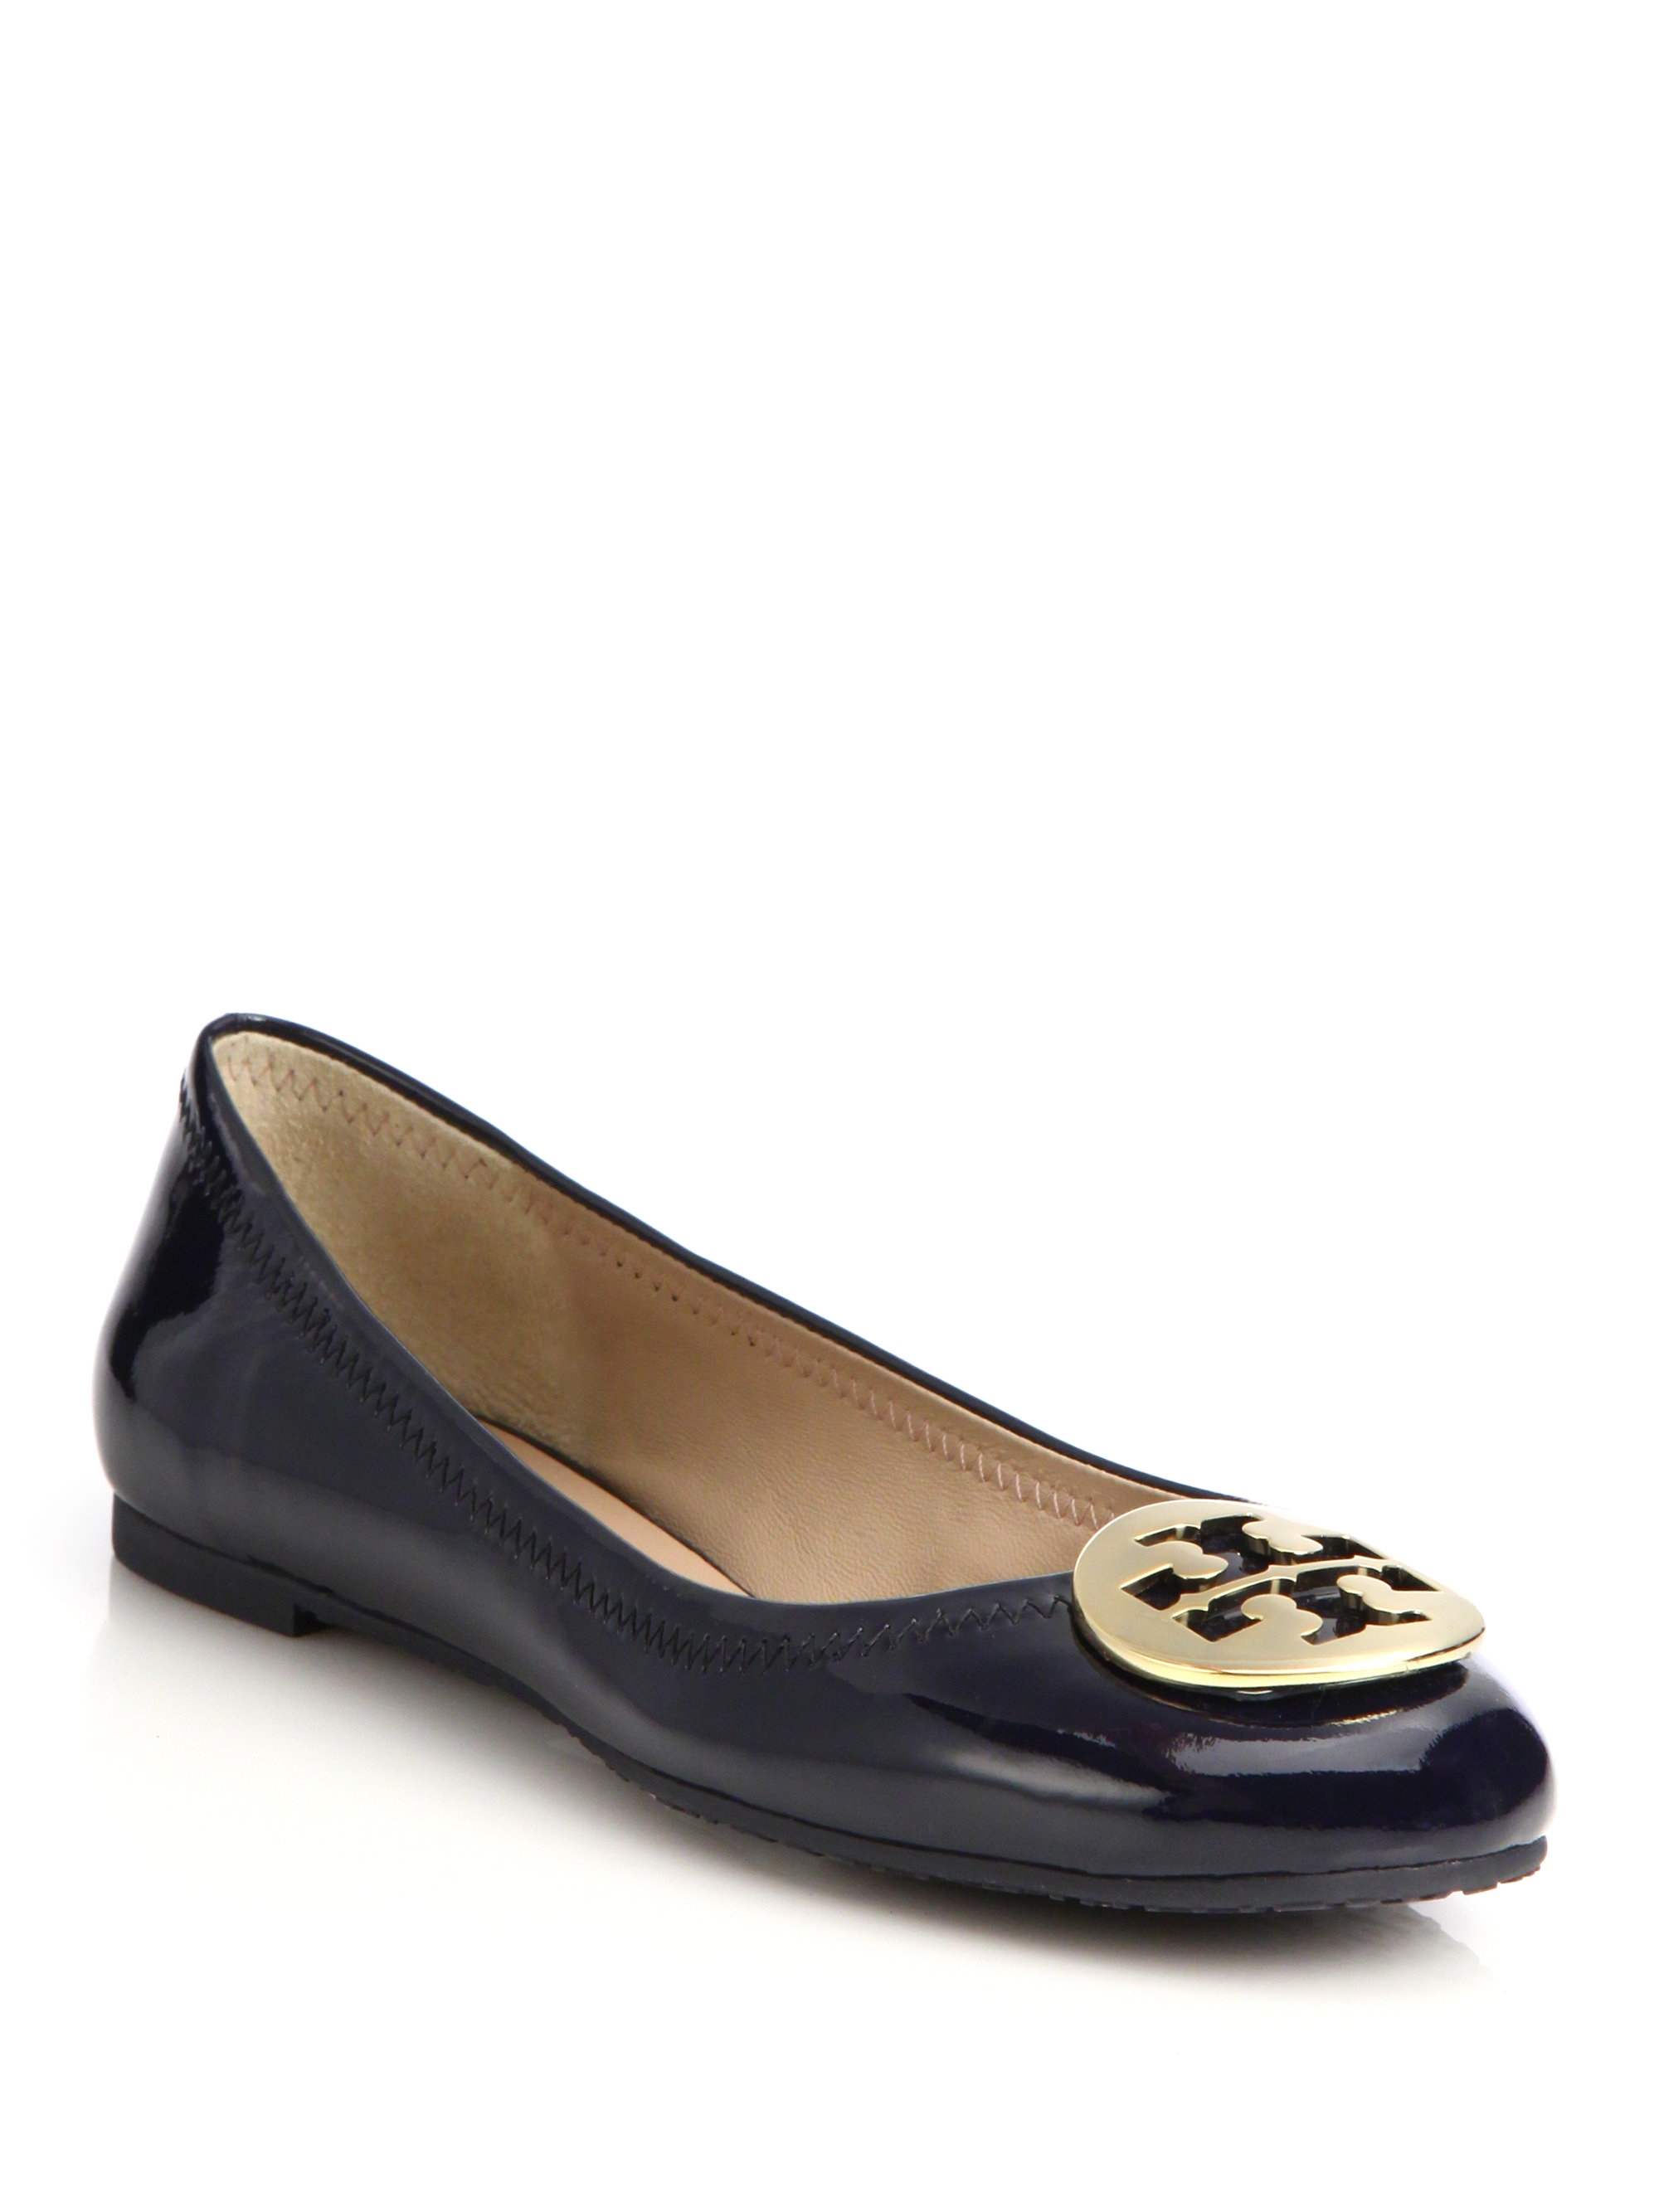 83283733a6a914 ... where can i buy lyst tory burch reva patent leather ballet flats in red  c3222 bbda8